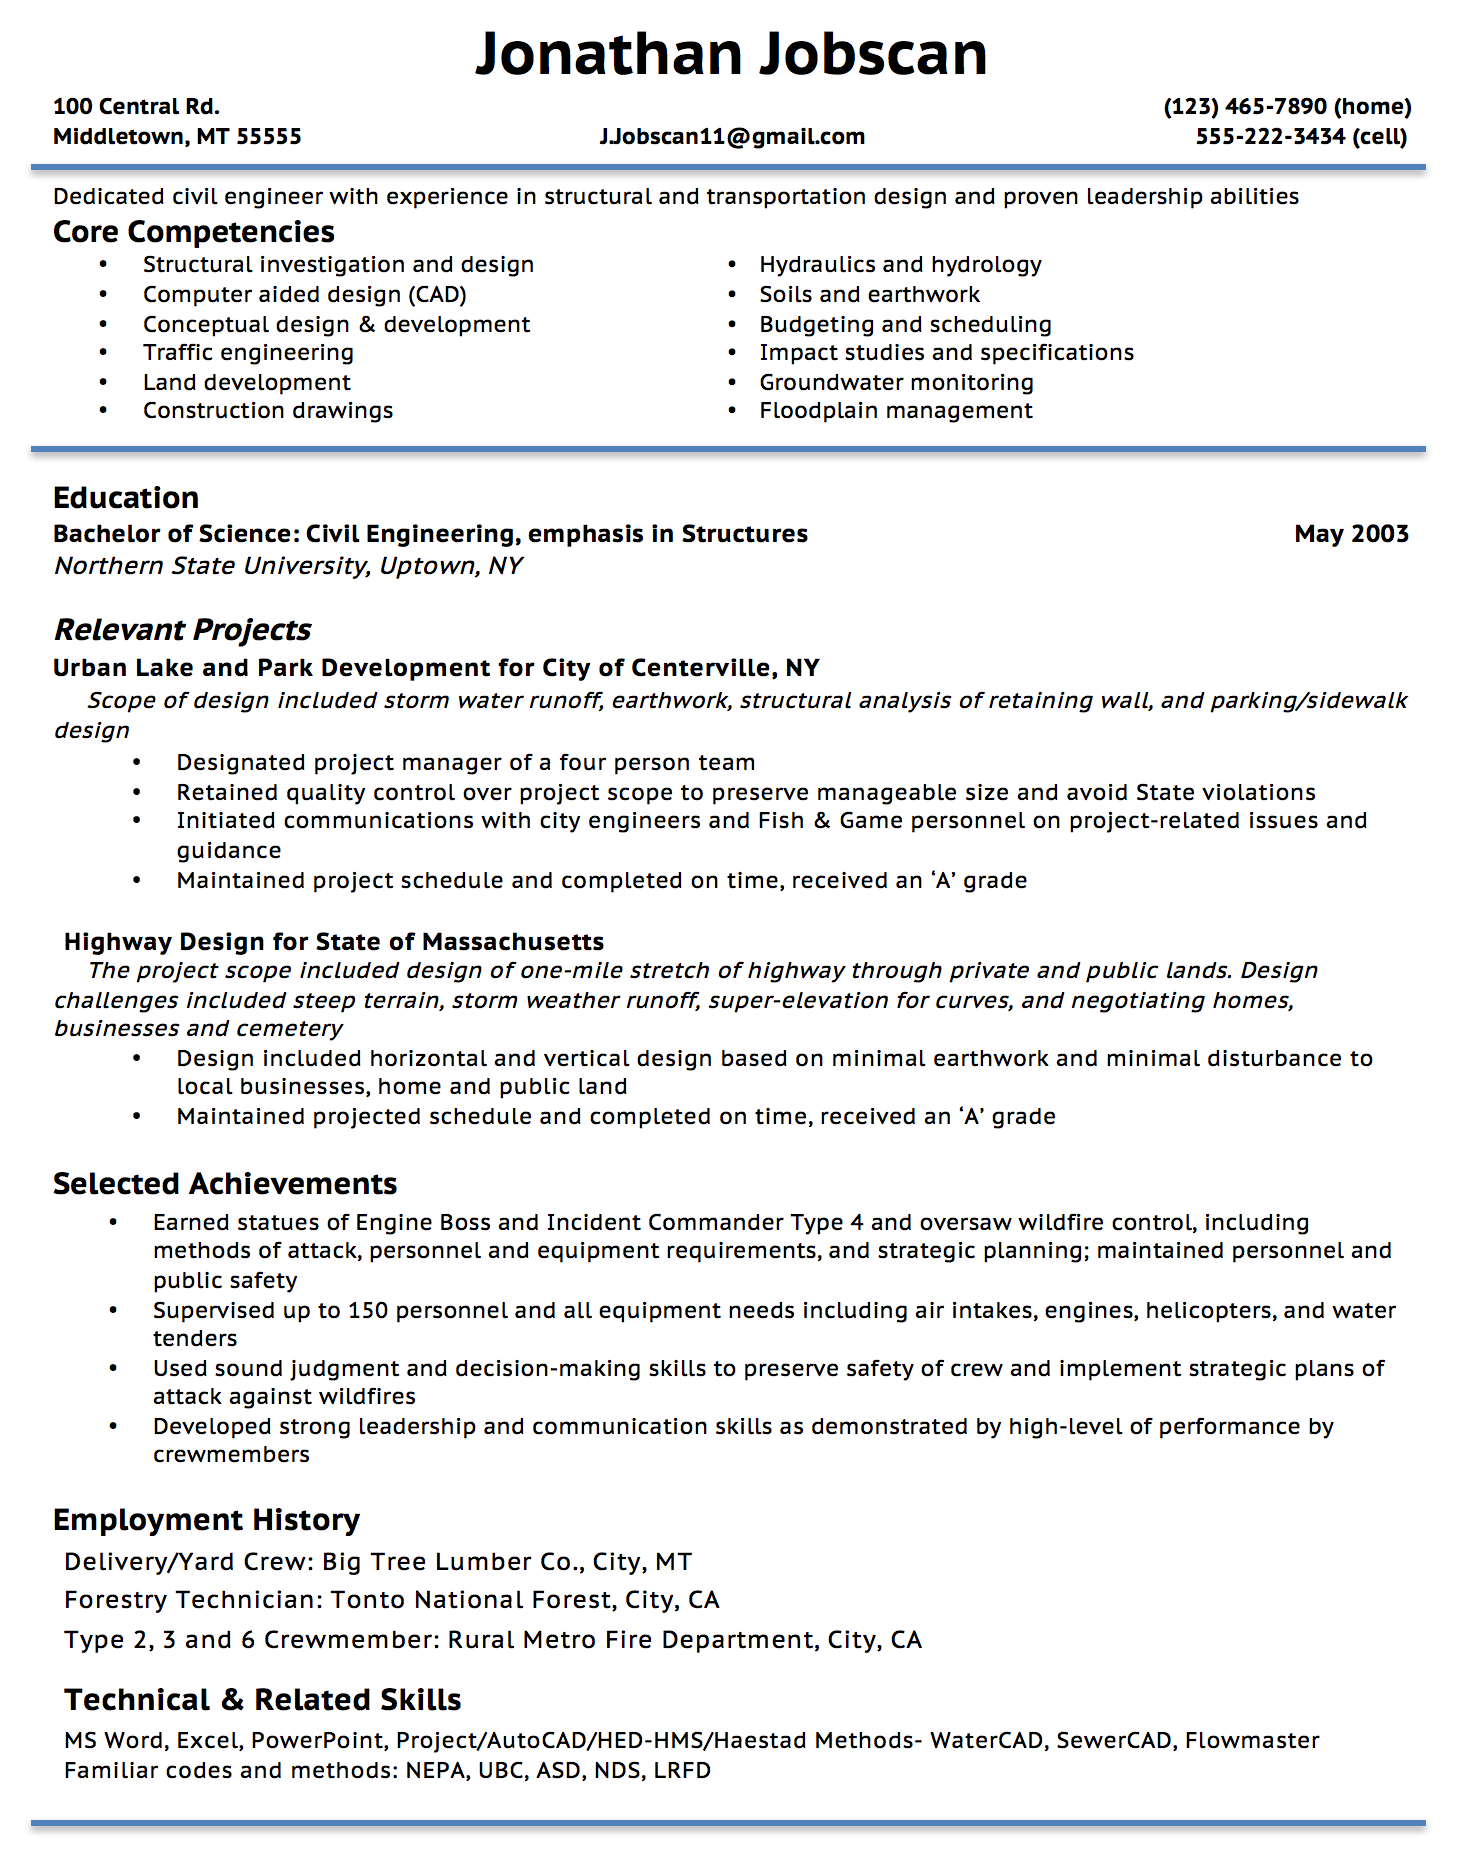 Opposenewapstandardsus  Sweet Resume Writing Guide  Jobscan With Great Example Of A Functional Resume Format With Adorable Basic Resume Outline Also Chef Resume Template In Addition Resume Chronological Order And Bartender Resumes As Well As Library Assistant Resume Additionally Pediatric Nurse Resume From Jobscanco With Opposenewapstandardsus  Great Resume Writing Guide  Jobscan With Adorable Example Of A Functional Resume Format And Sweet Basic Resume Outline Also Chef Resume Template In Addition Resume Chronological Order From Jobscanco